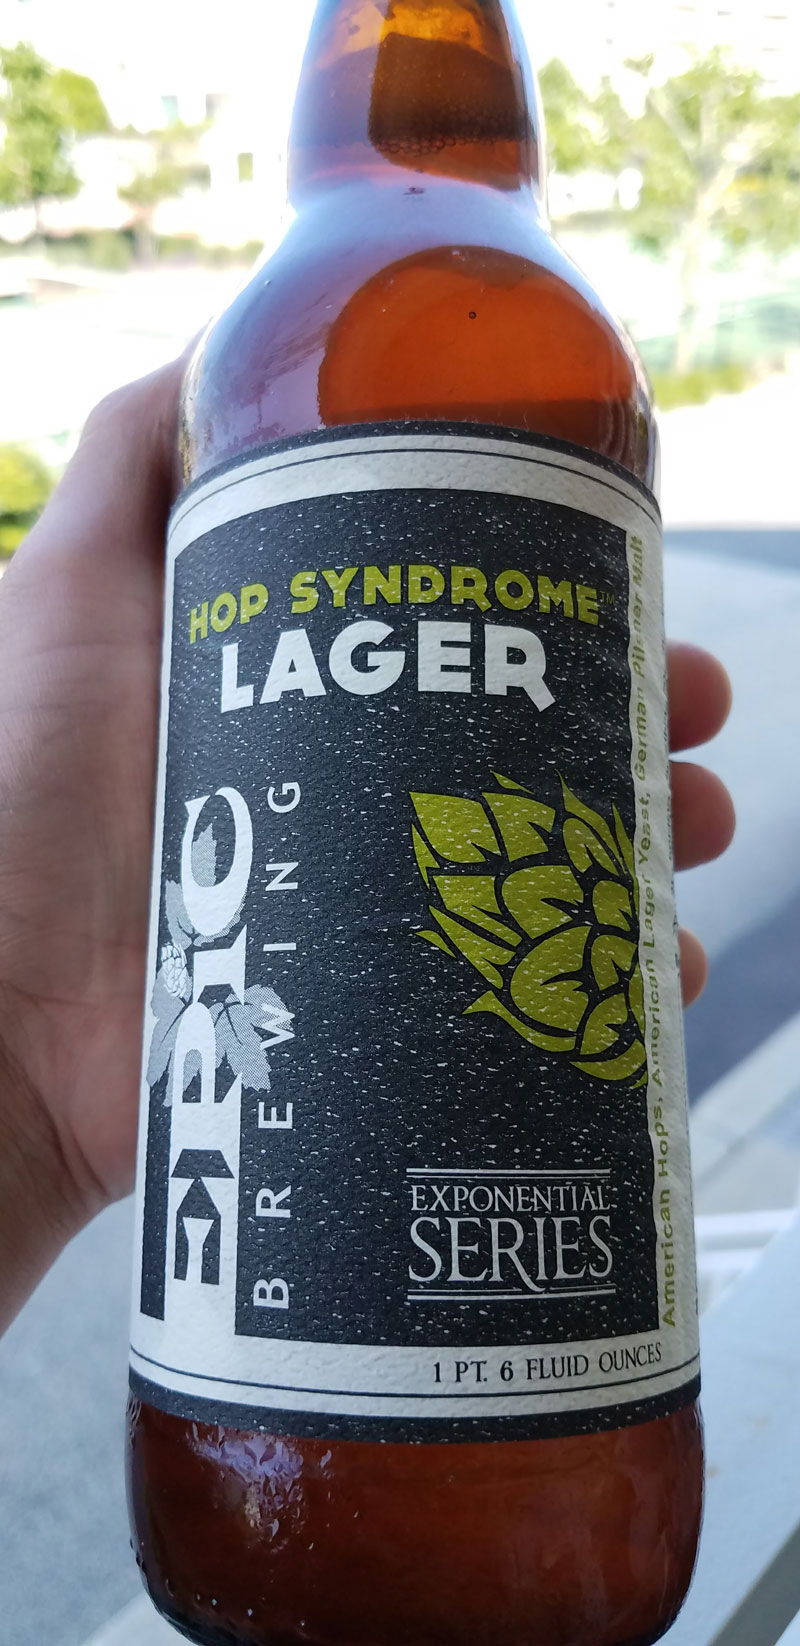 Crisp, Refreshing, Drinkable. A wondrously hoppy lager, this is a clean, spicy, and fruity brew that hits your summer palate just right. Click through for the full review.